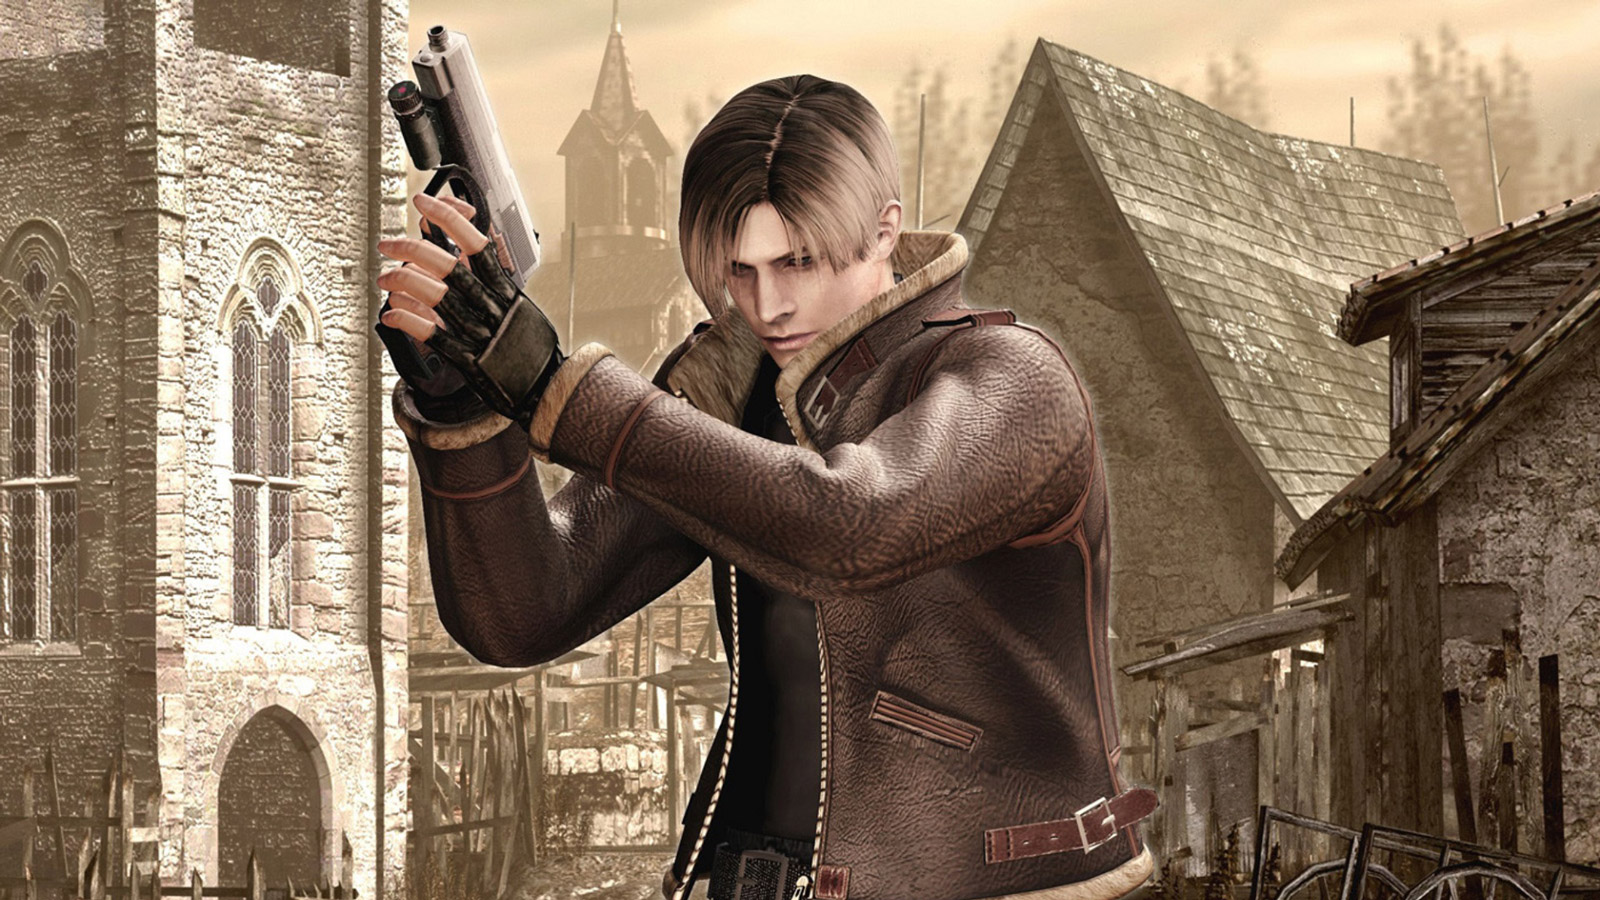 Free Resident Evil 4 Wallpaper in 1600x900